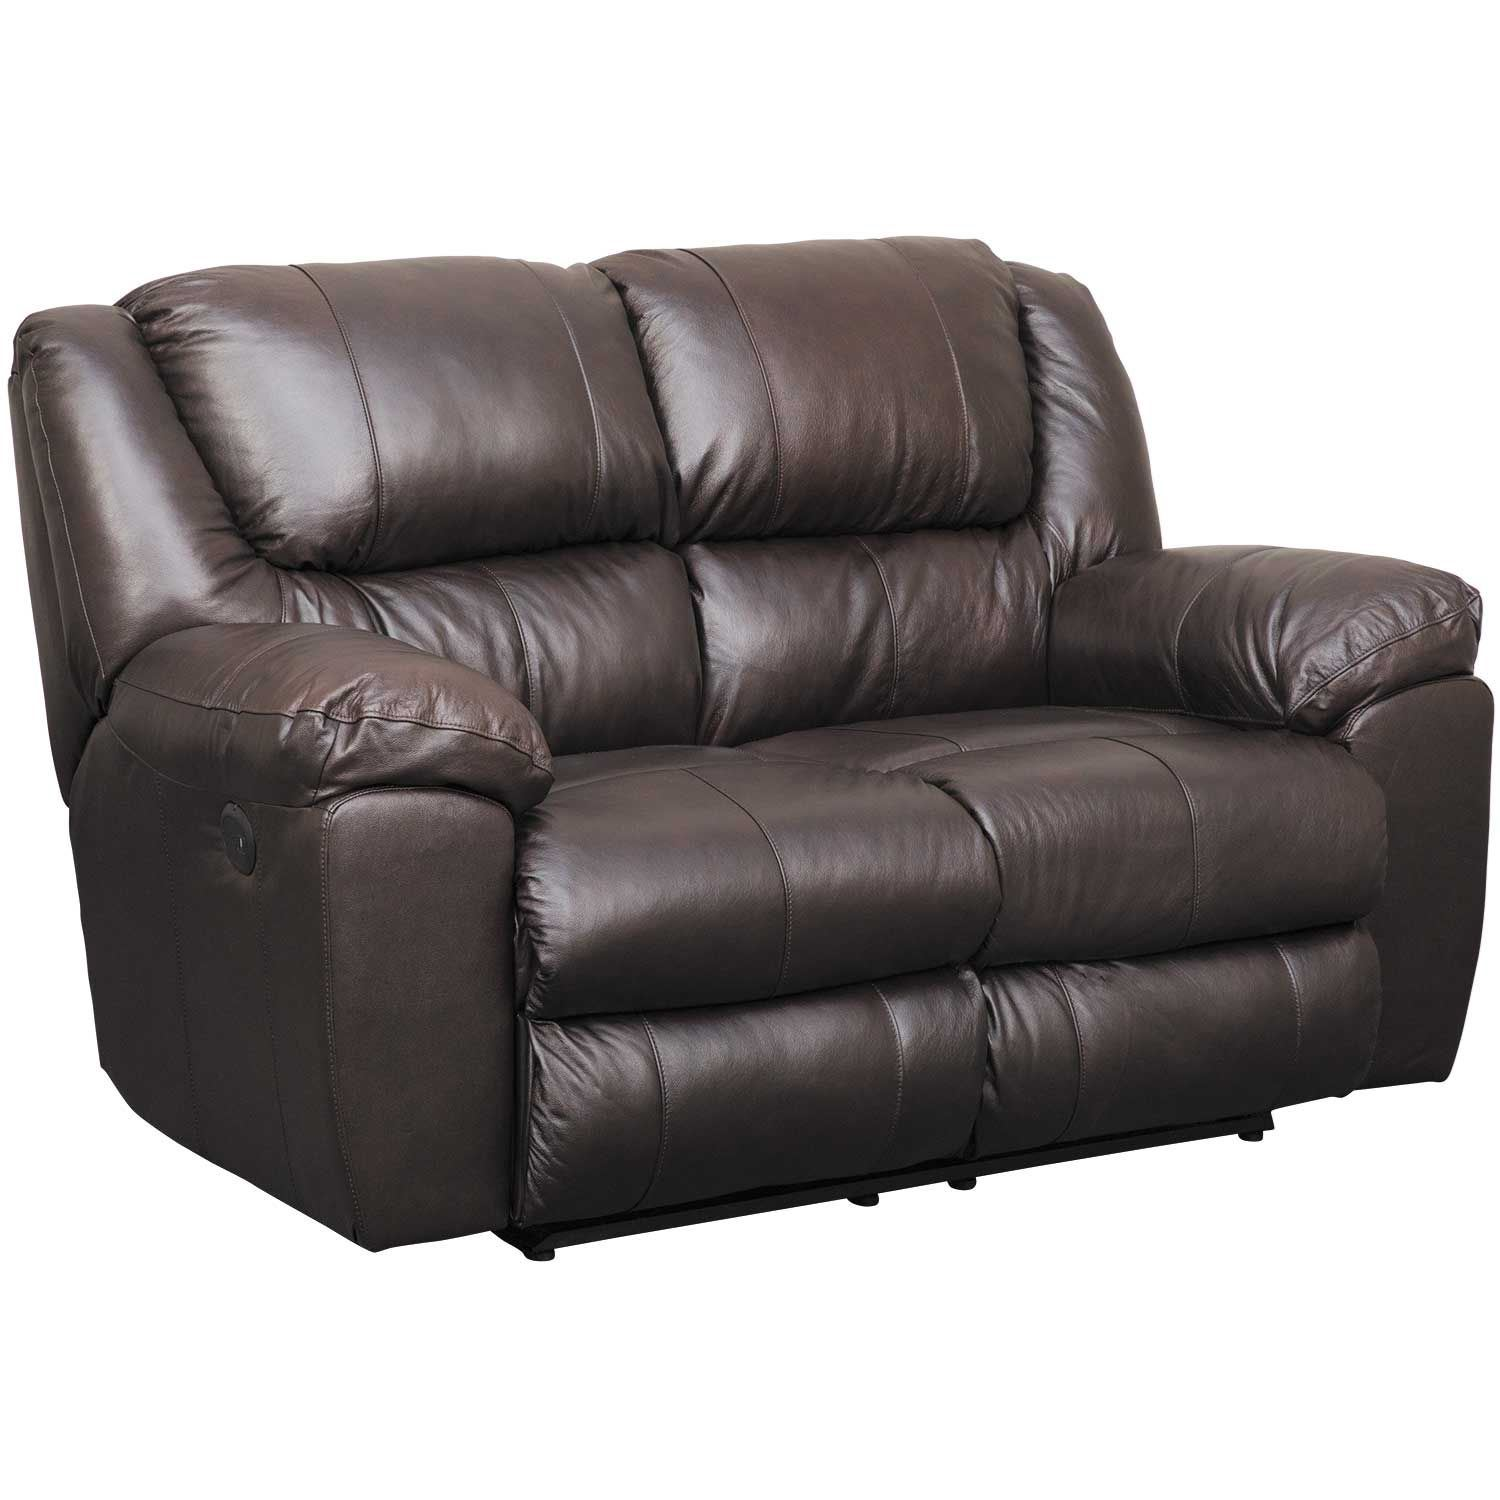 Italian Leather Rocking Reclining Loveseat 4912 2